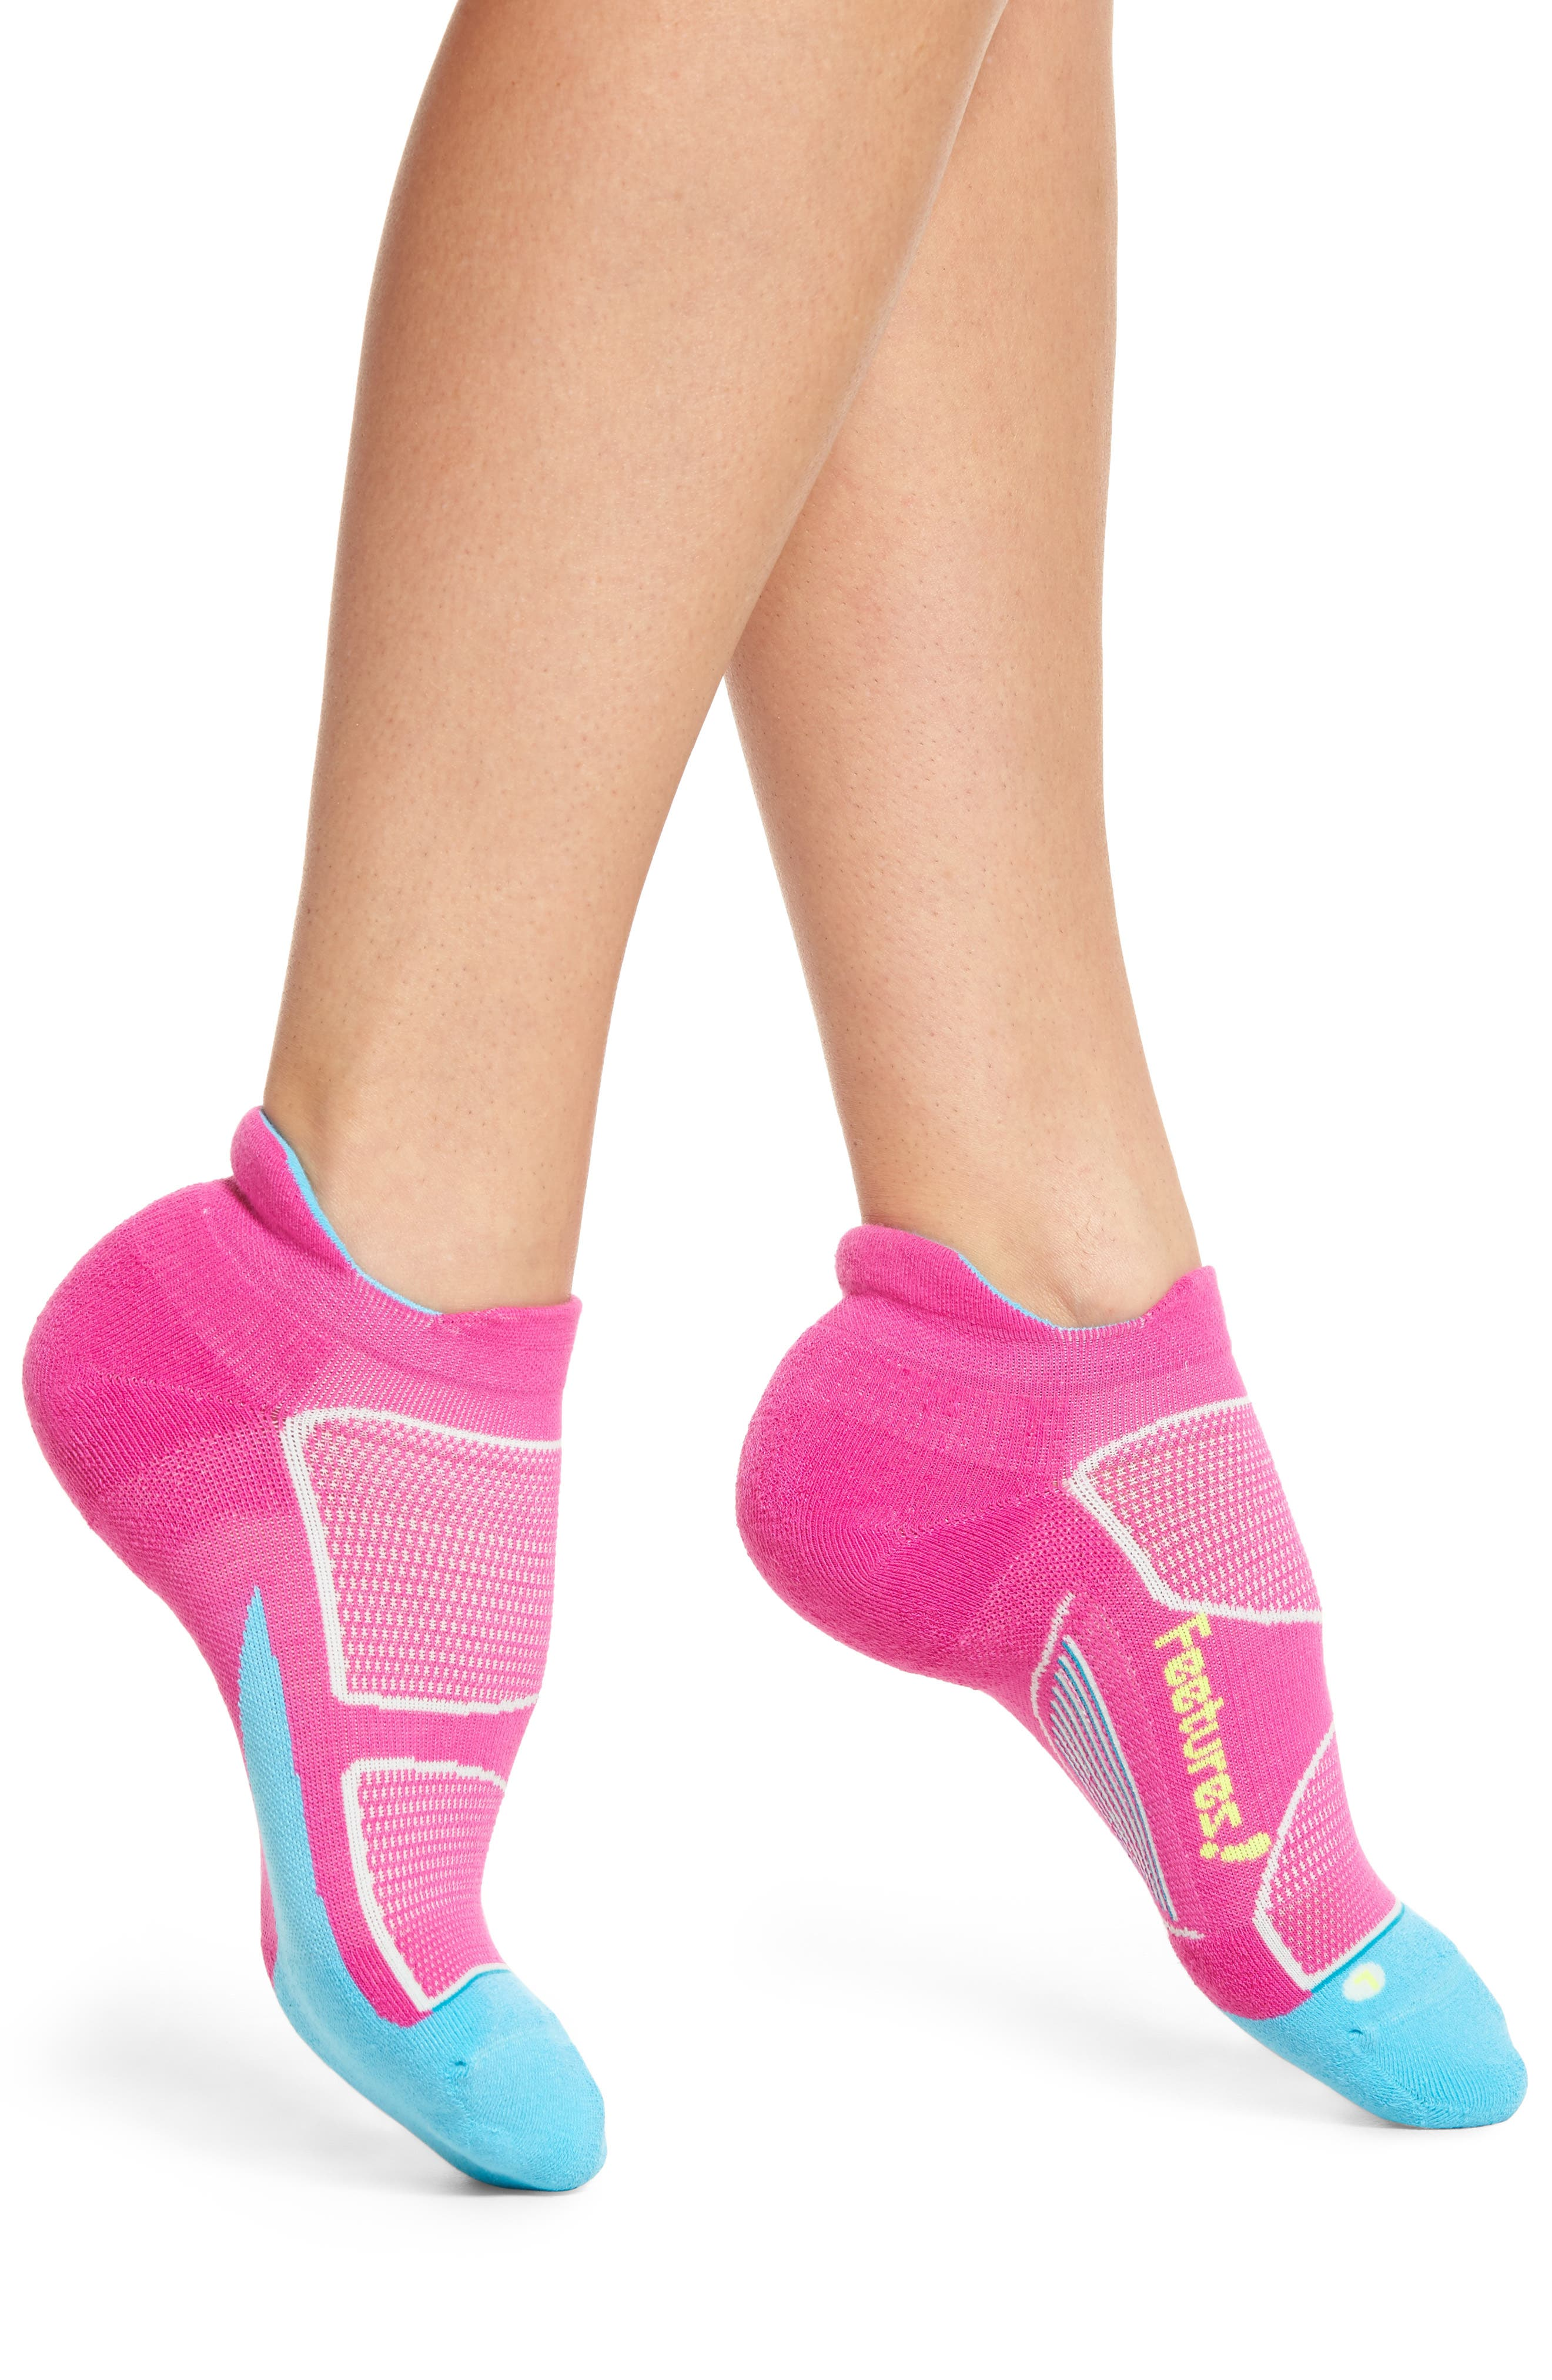 Feetures Elite Max No-Show Running Socks